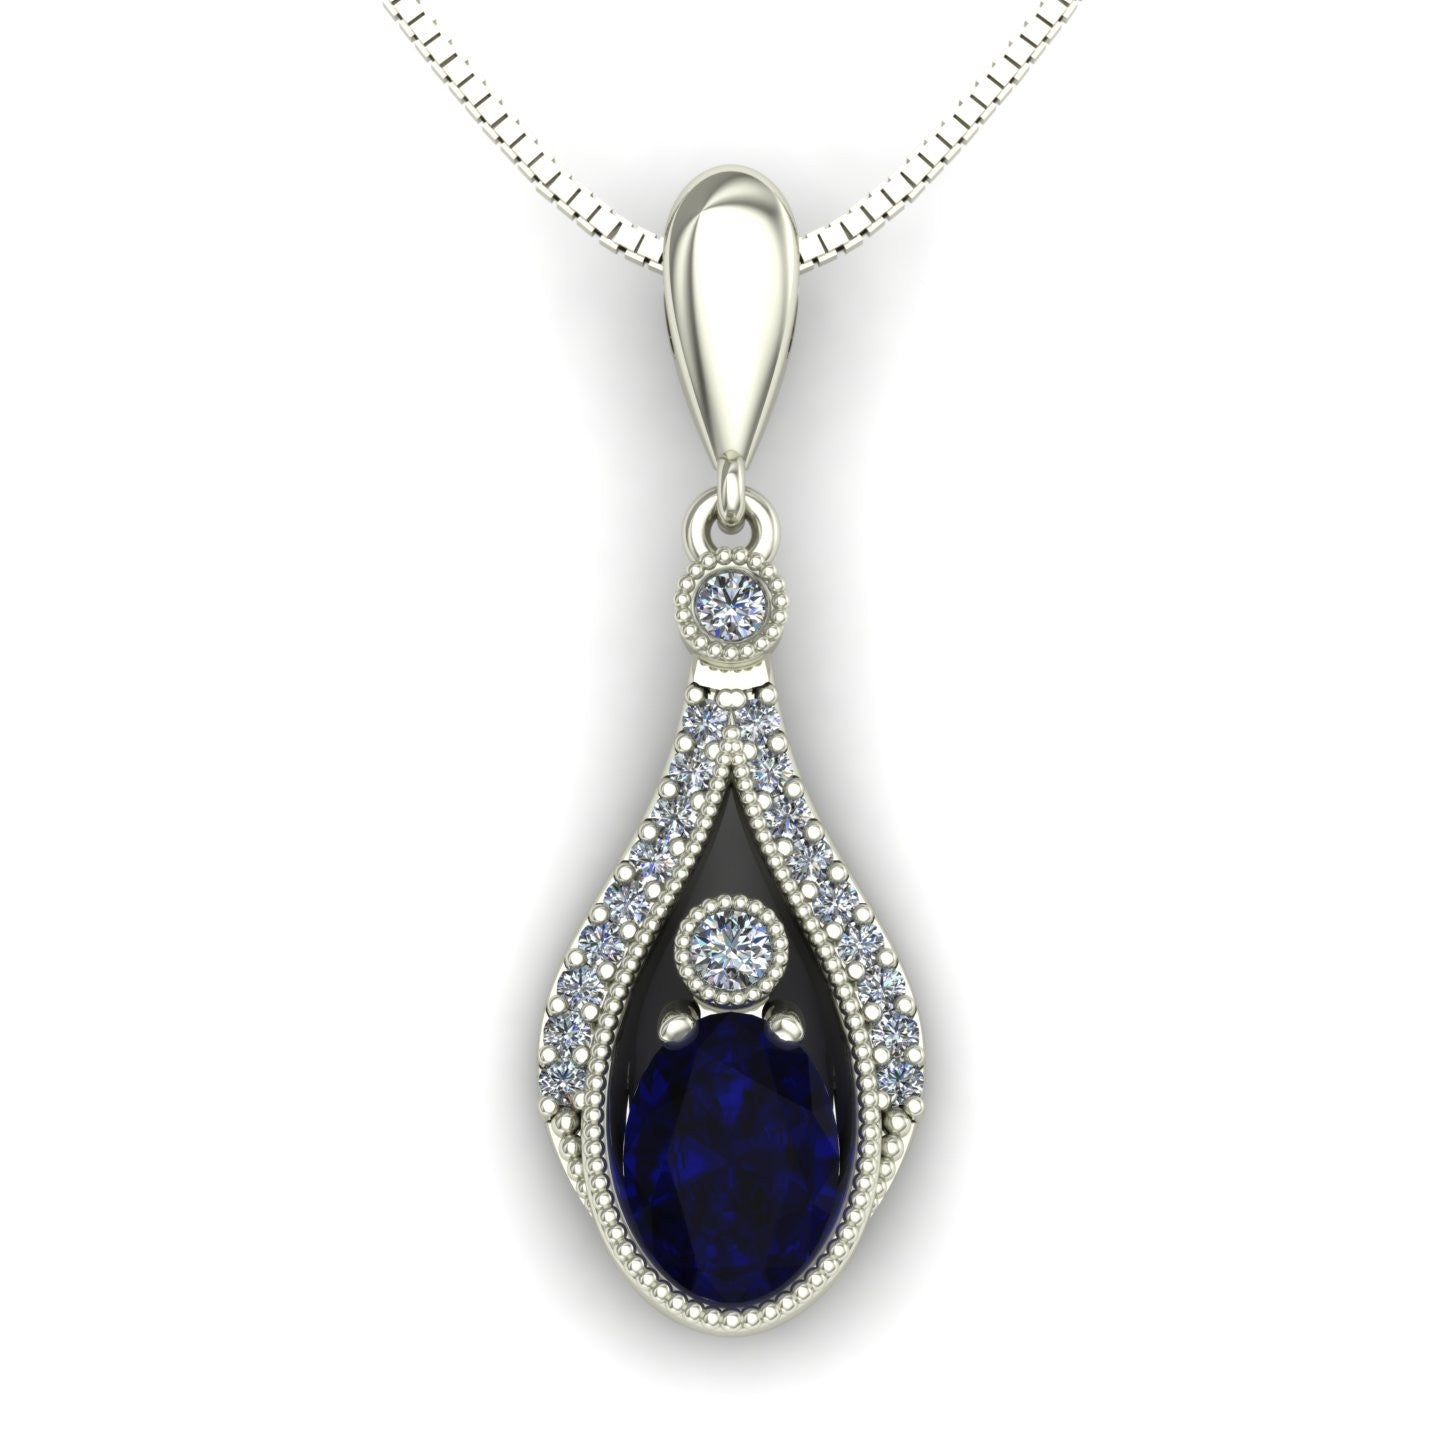 Blue sapphire and diamond drop pendant in 14k white gold